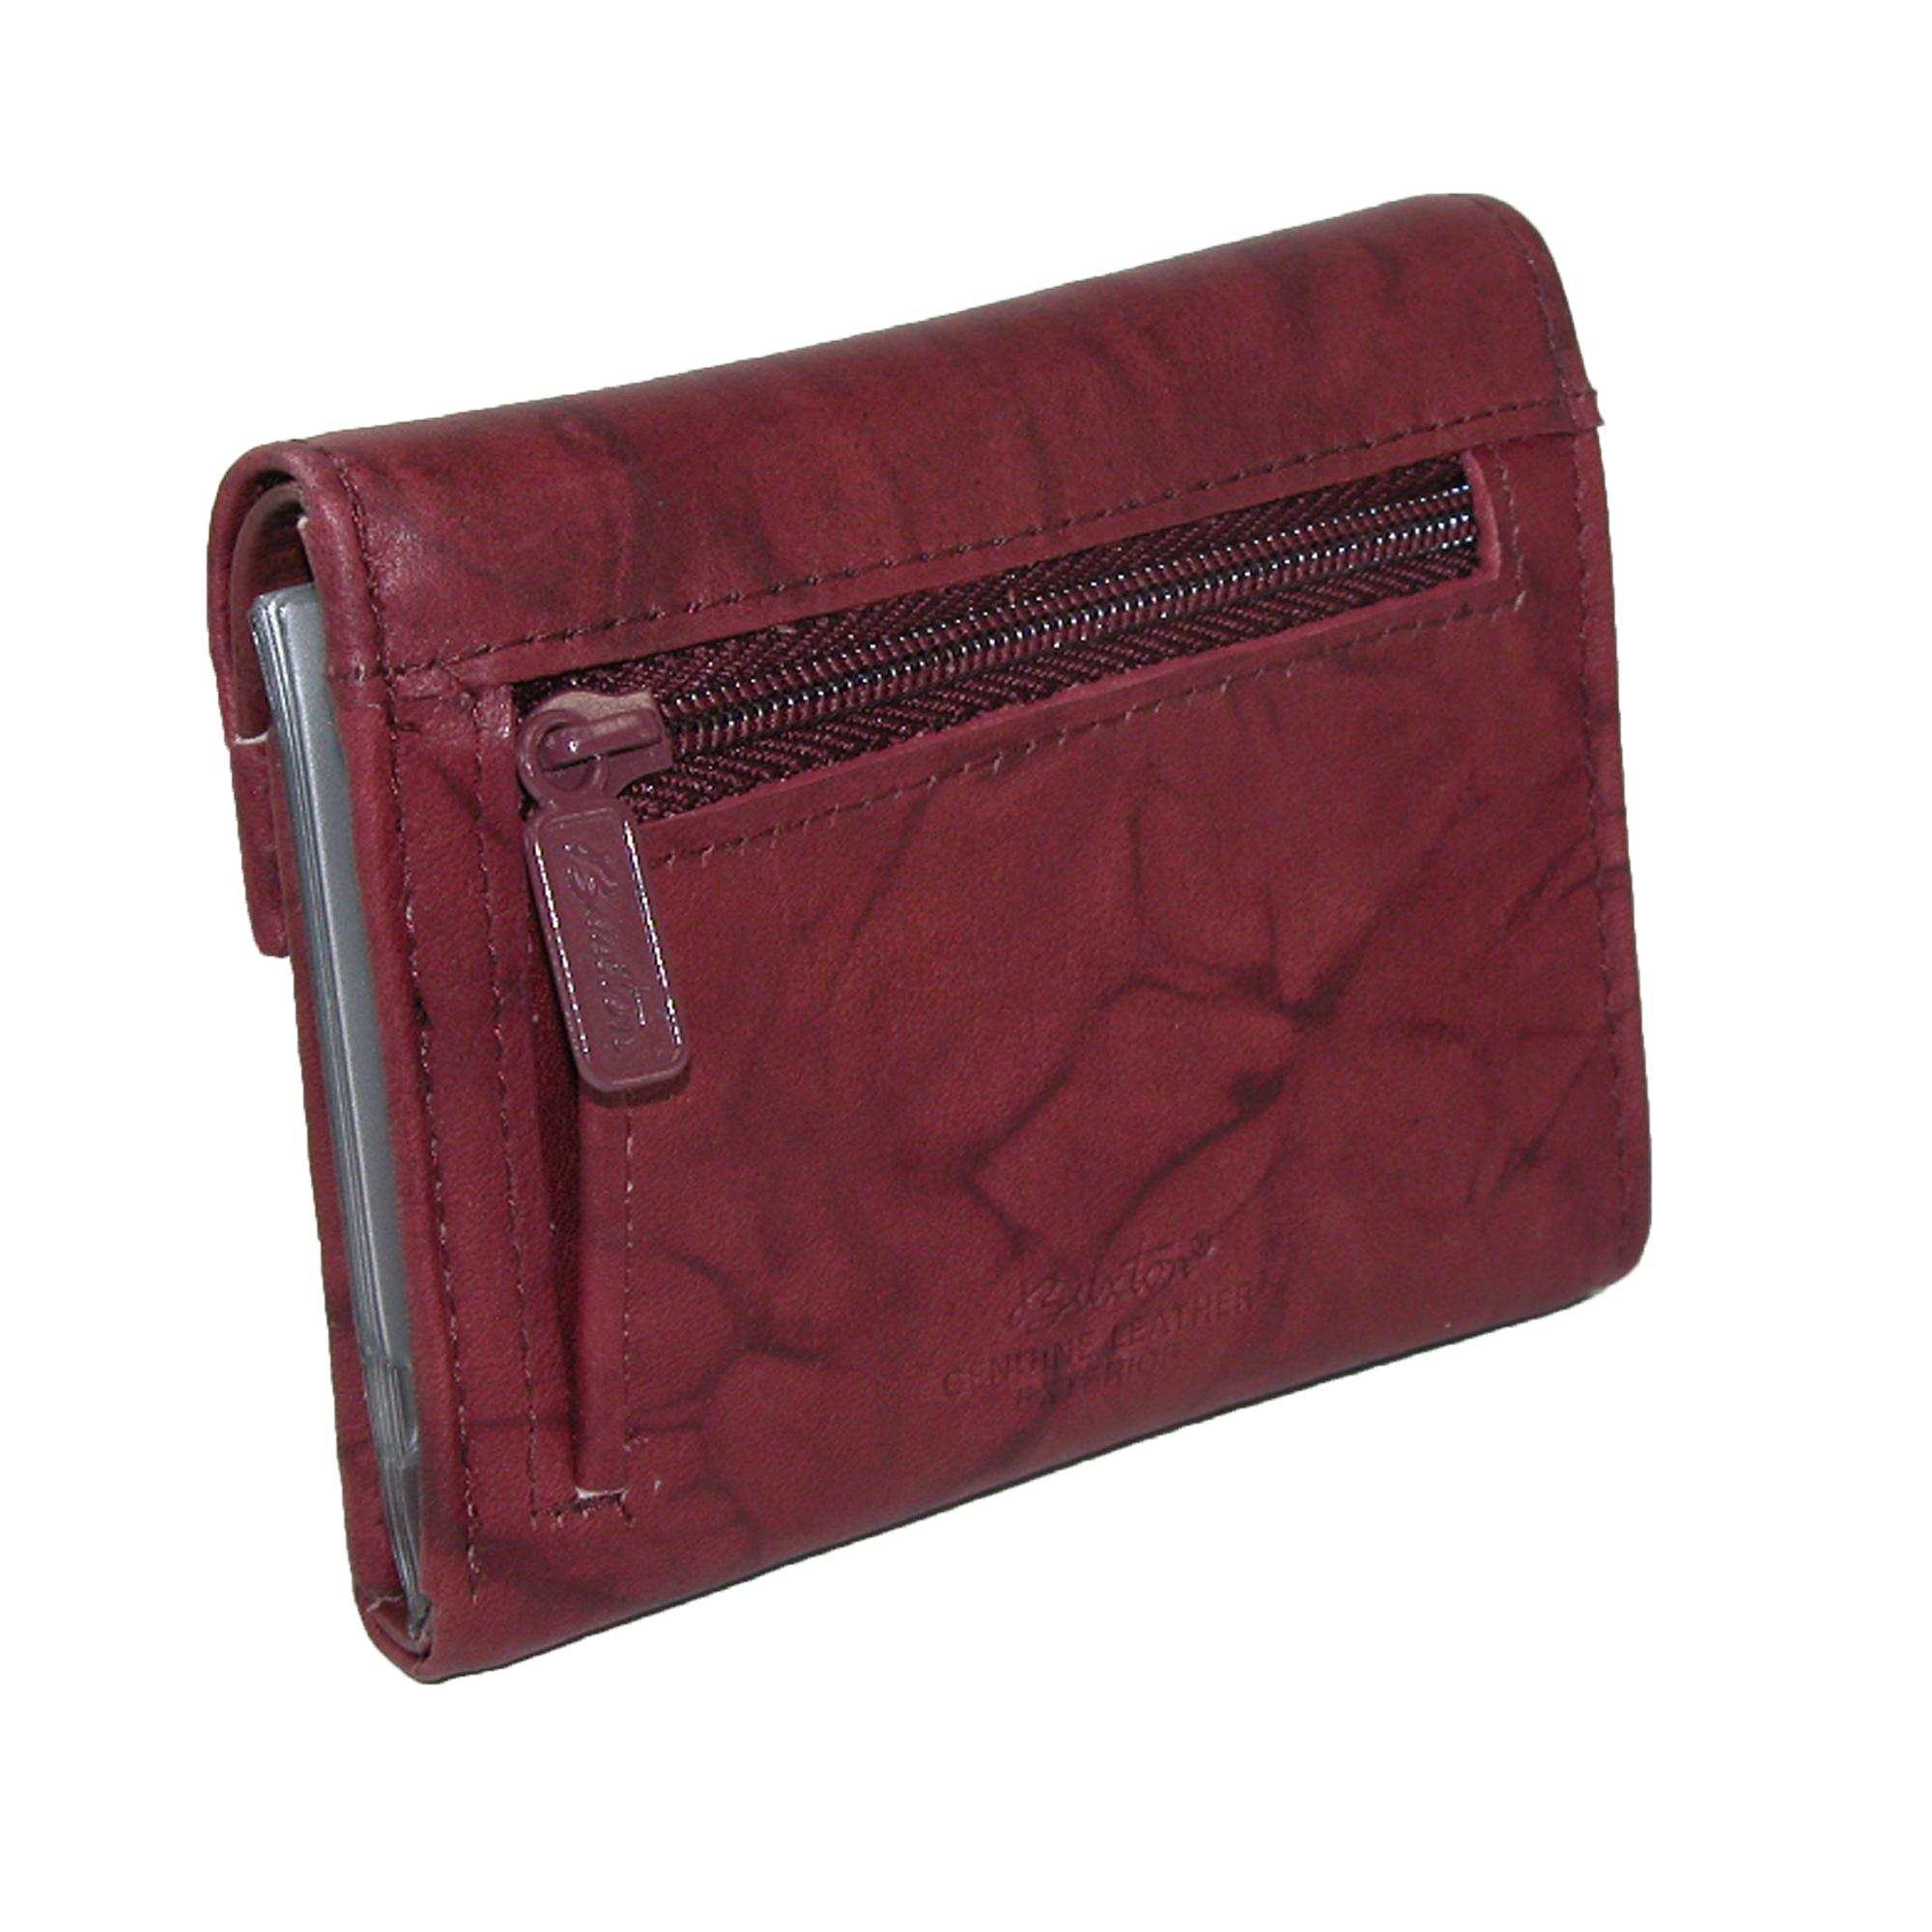 New Buxton Women s Leather Mini Trifold Wallet with Floral Emboss  167eba87f5707